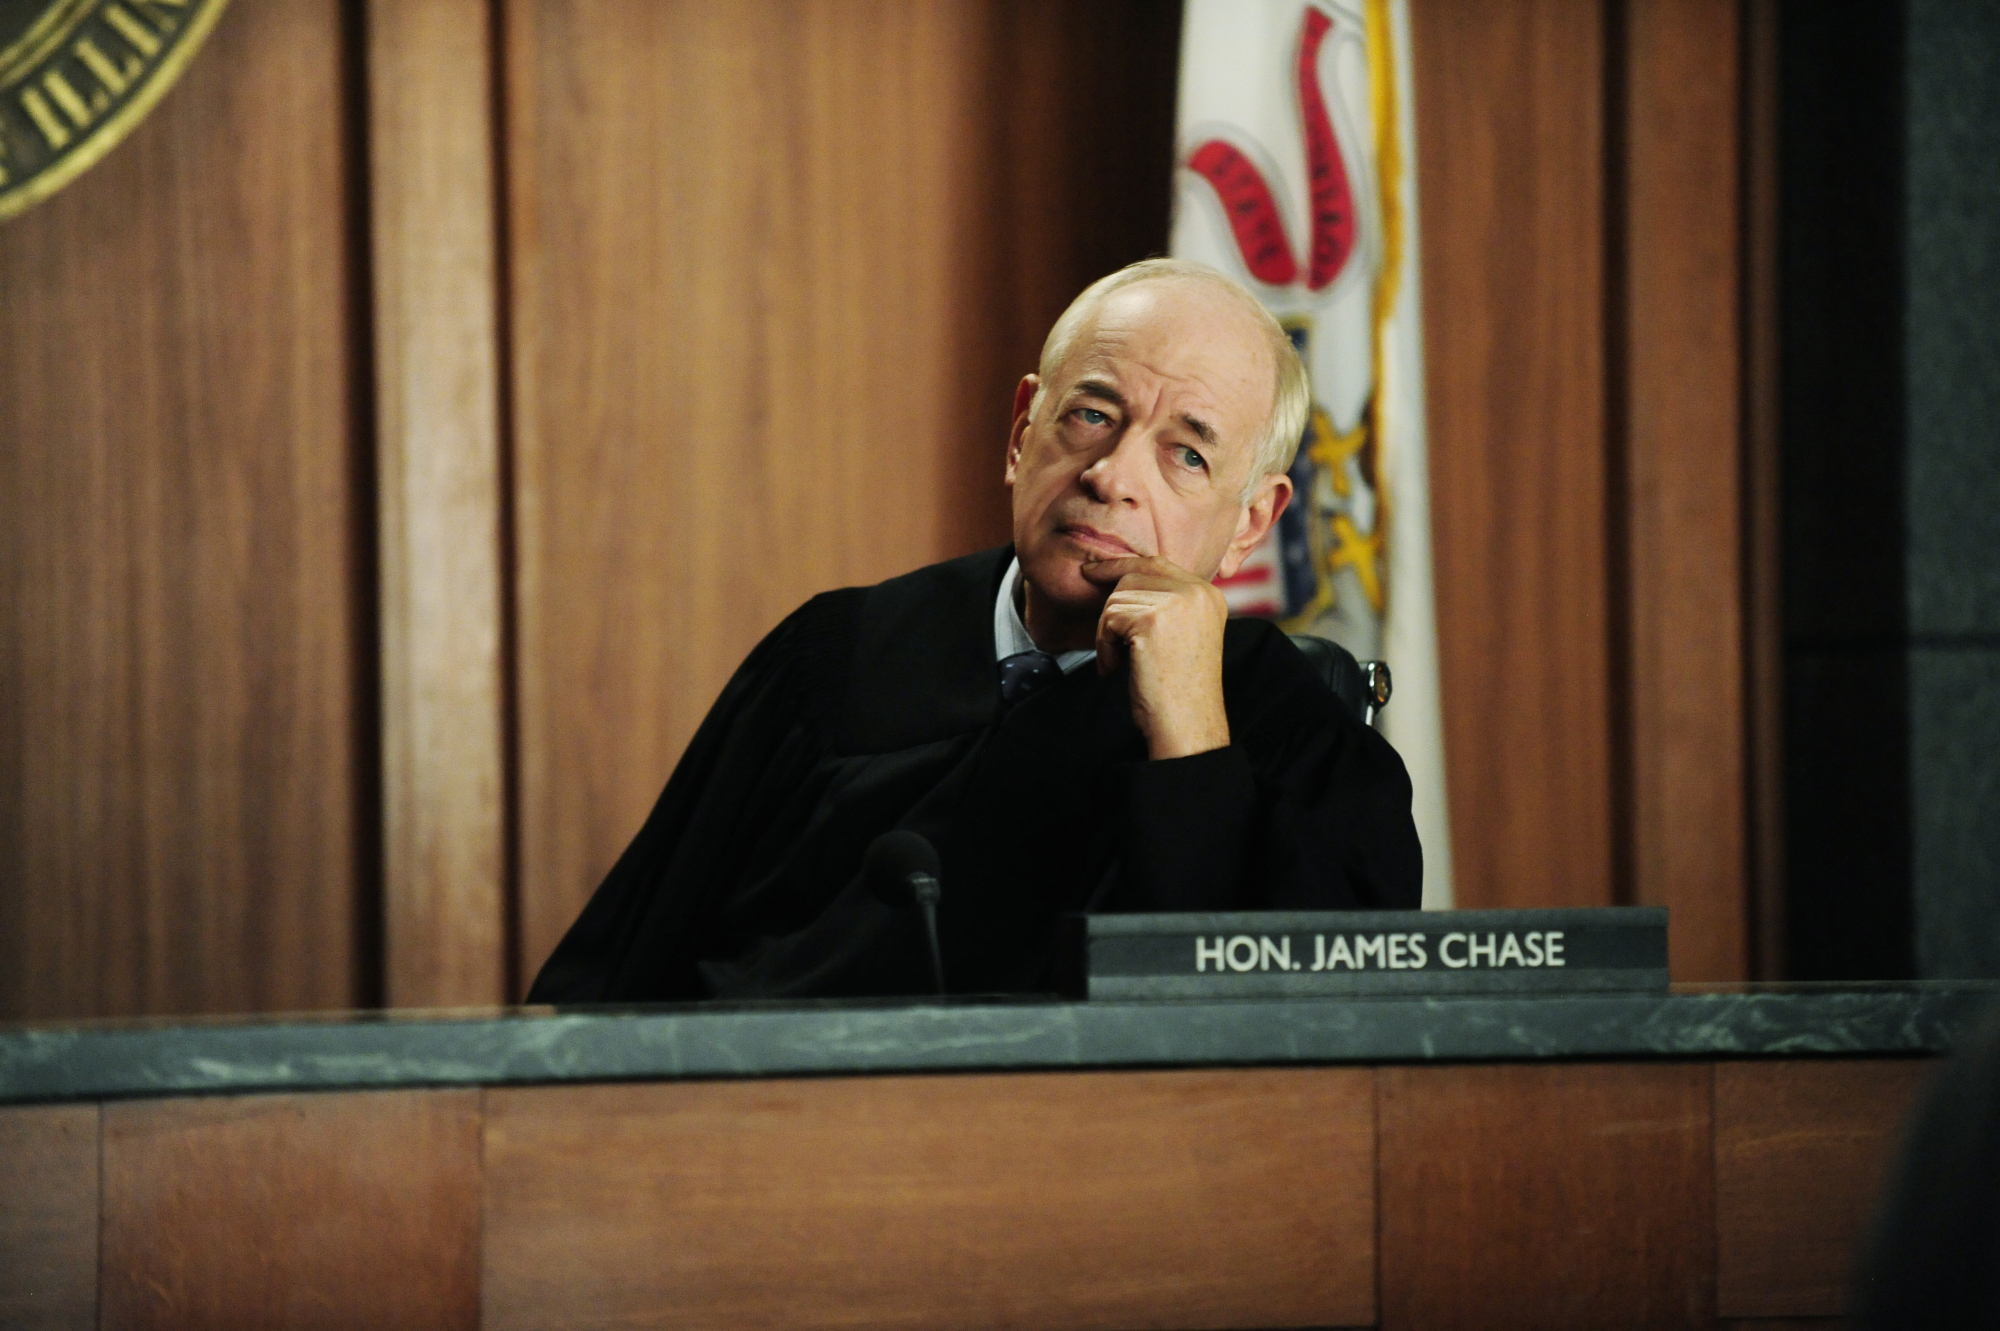 Judge Chase